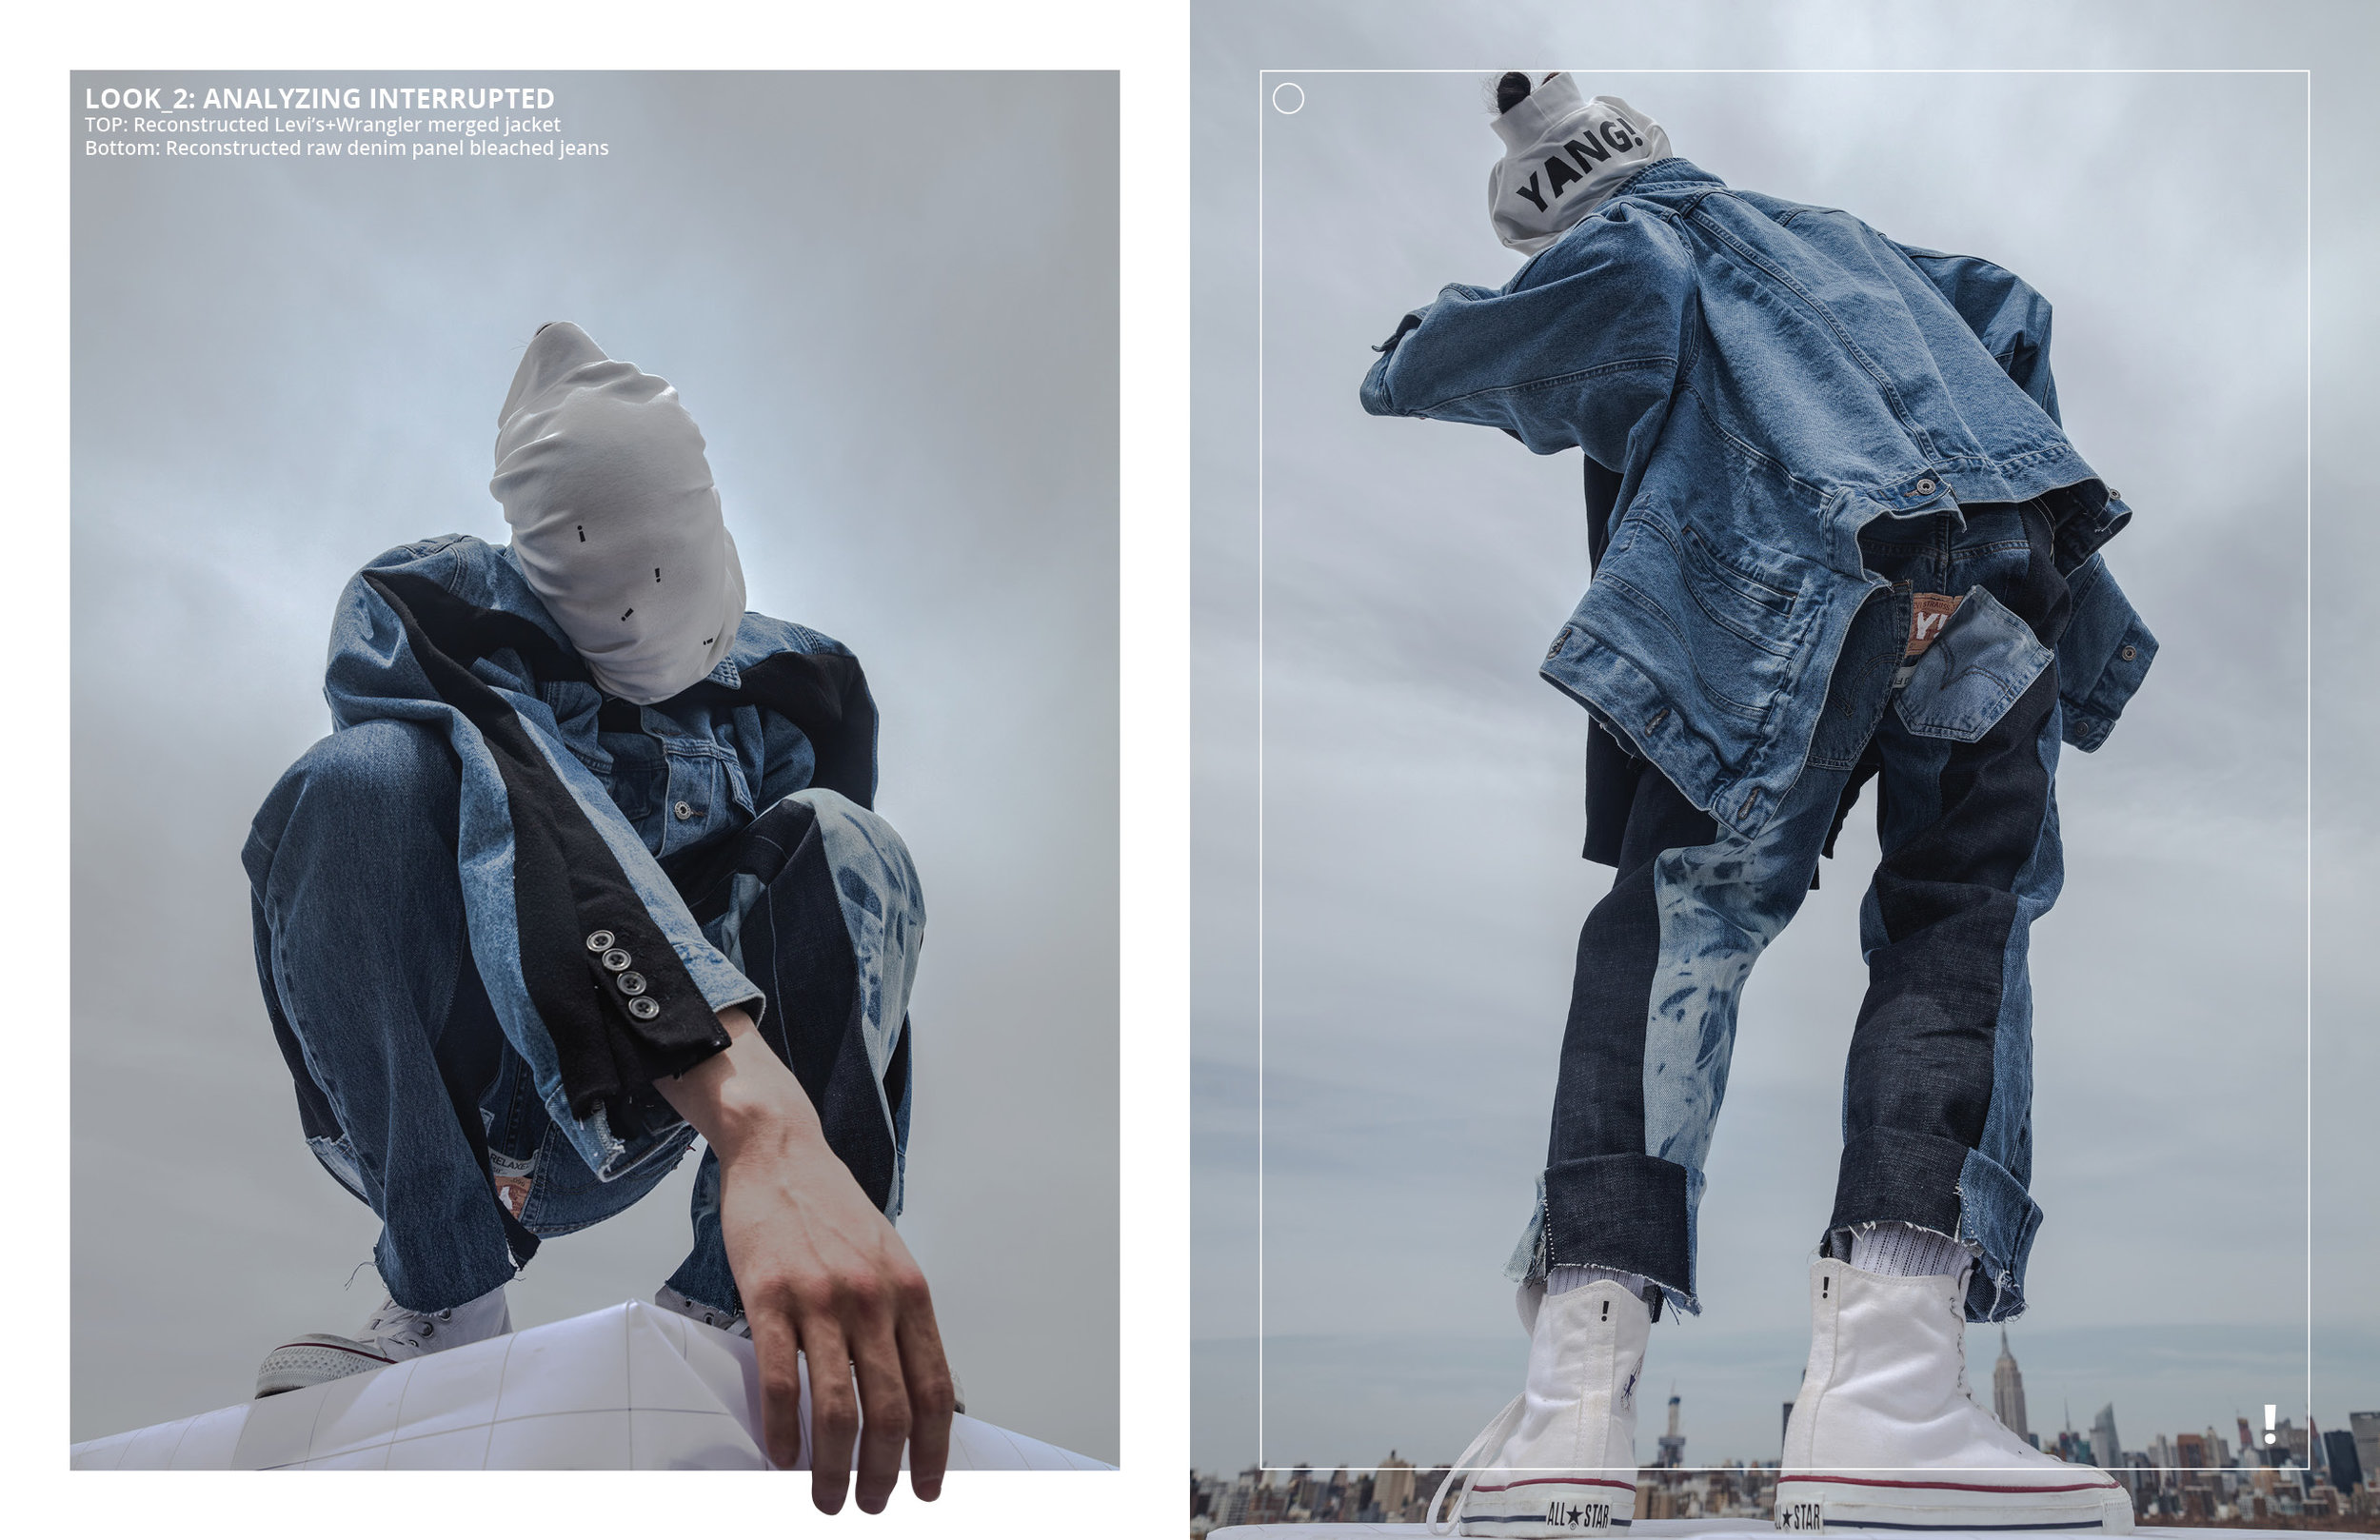 lookbook_final_SP5.jpg